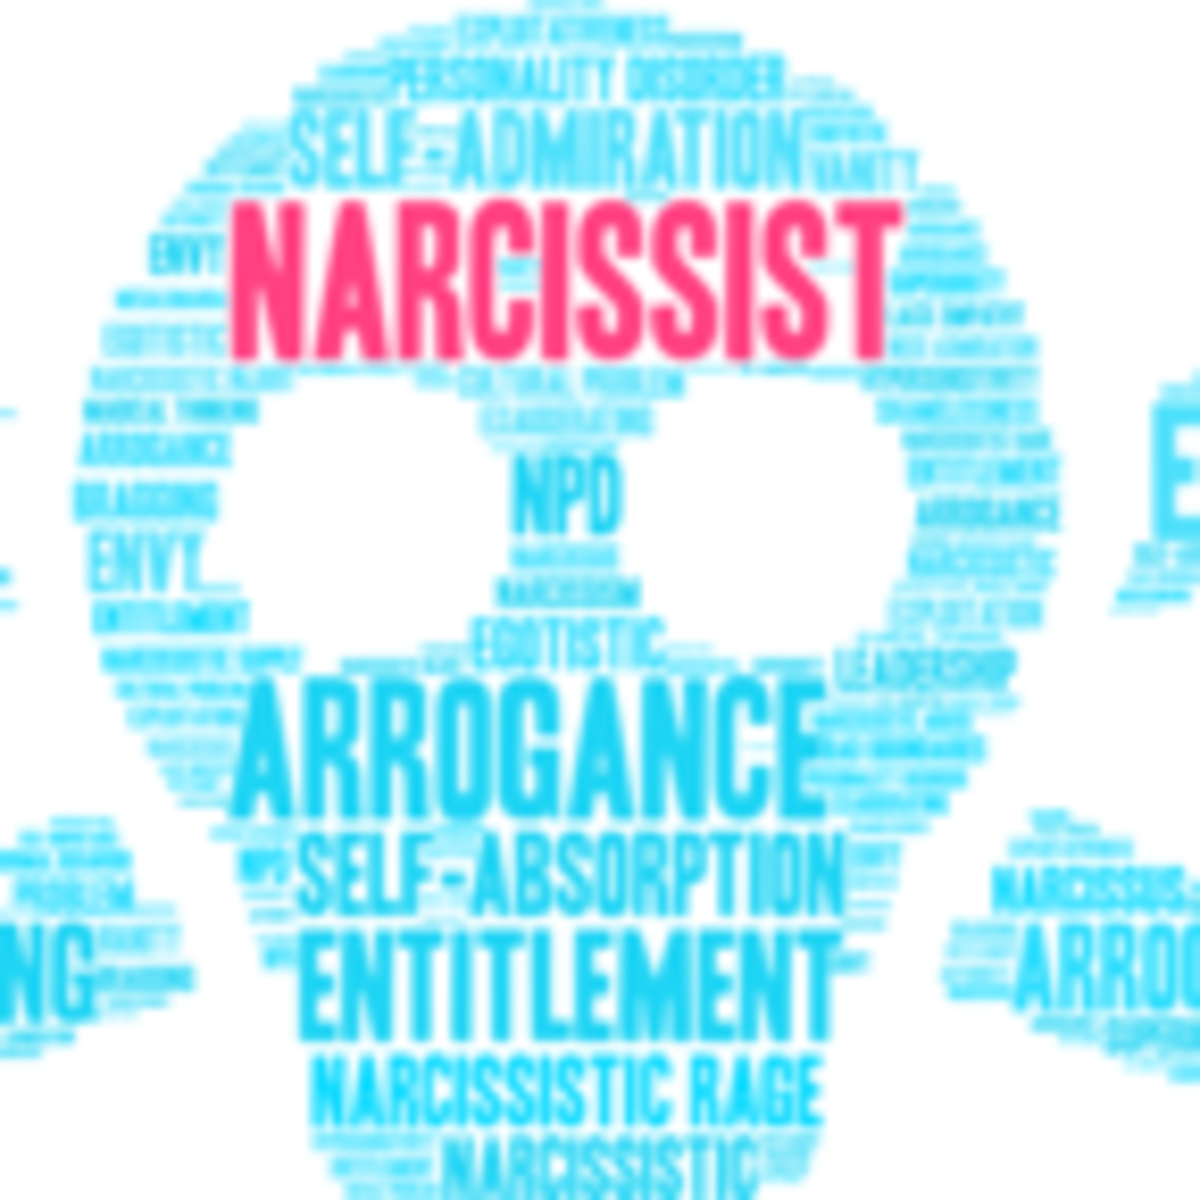 Narcissism, Needs for Certainty and Closure, and Relatedness